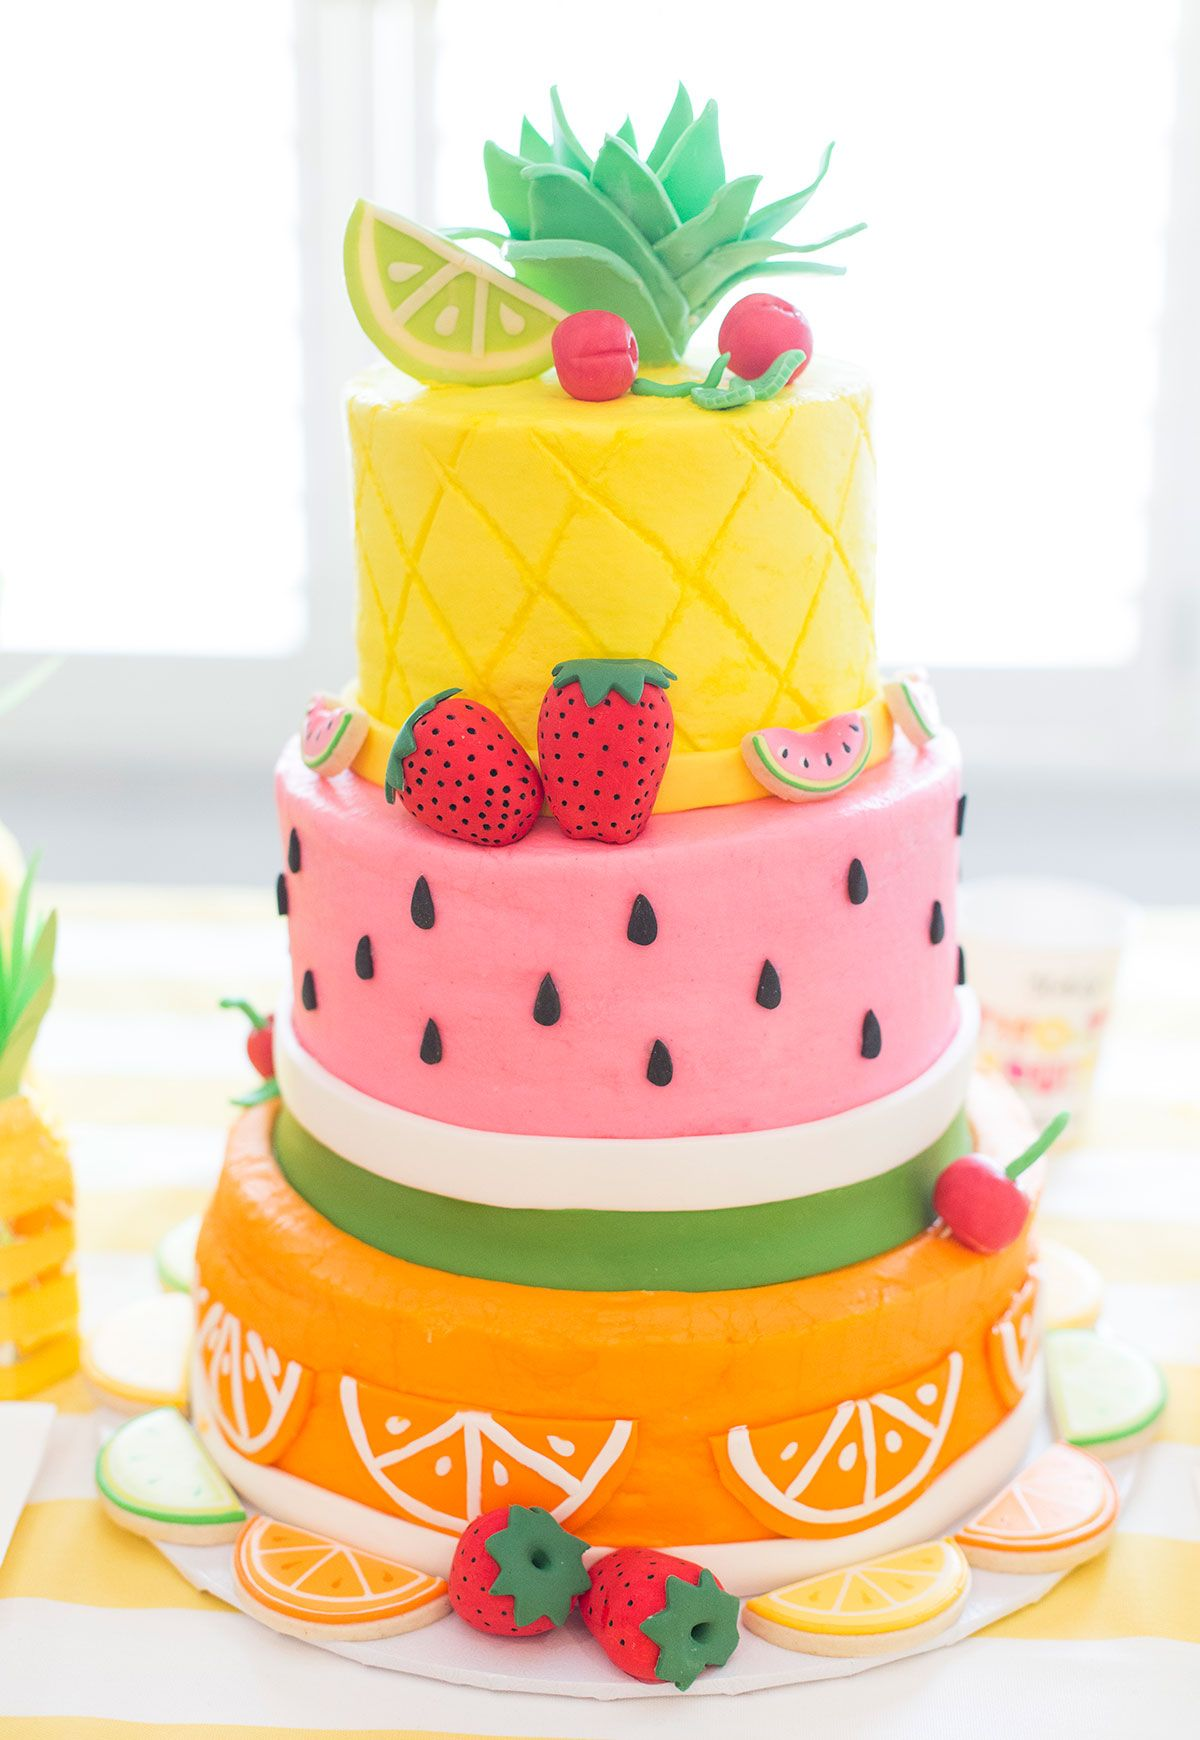 Fruit De Decoration Pour Gateau Two Tti Fruity Birthday Party Blakely Turns 2 Anniversaire